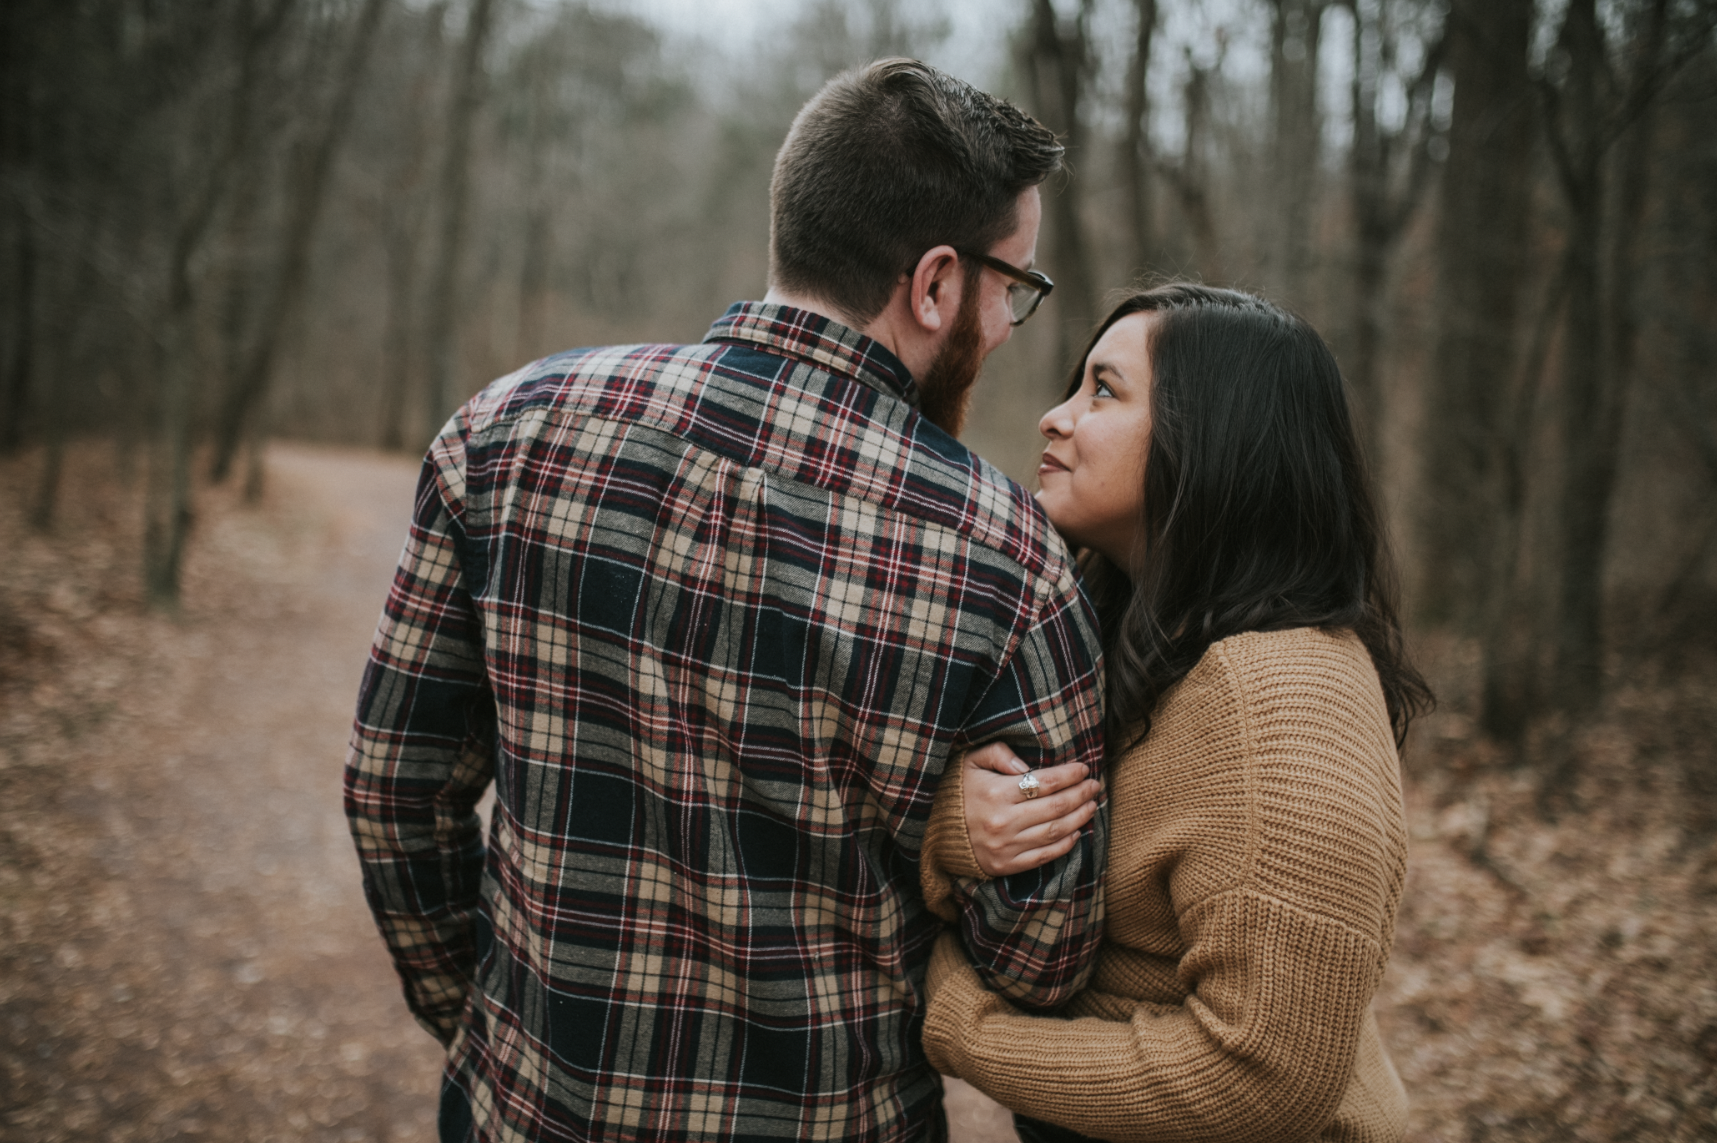 matt-natalia-winter-woods-engagement-session-pennsylvania-wedding-photographer-8